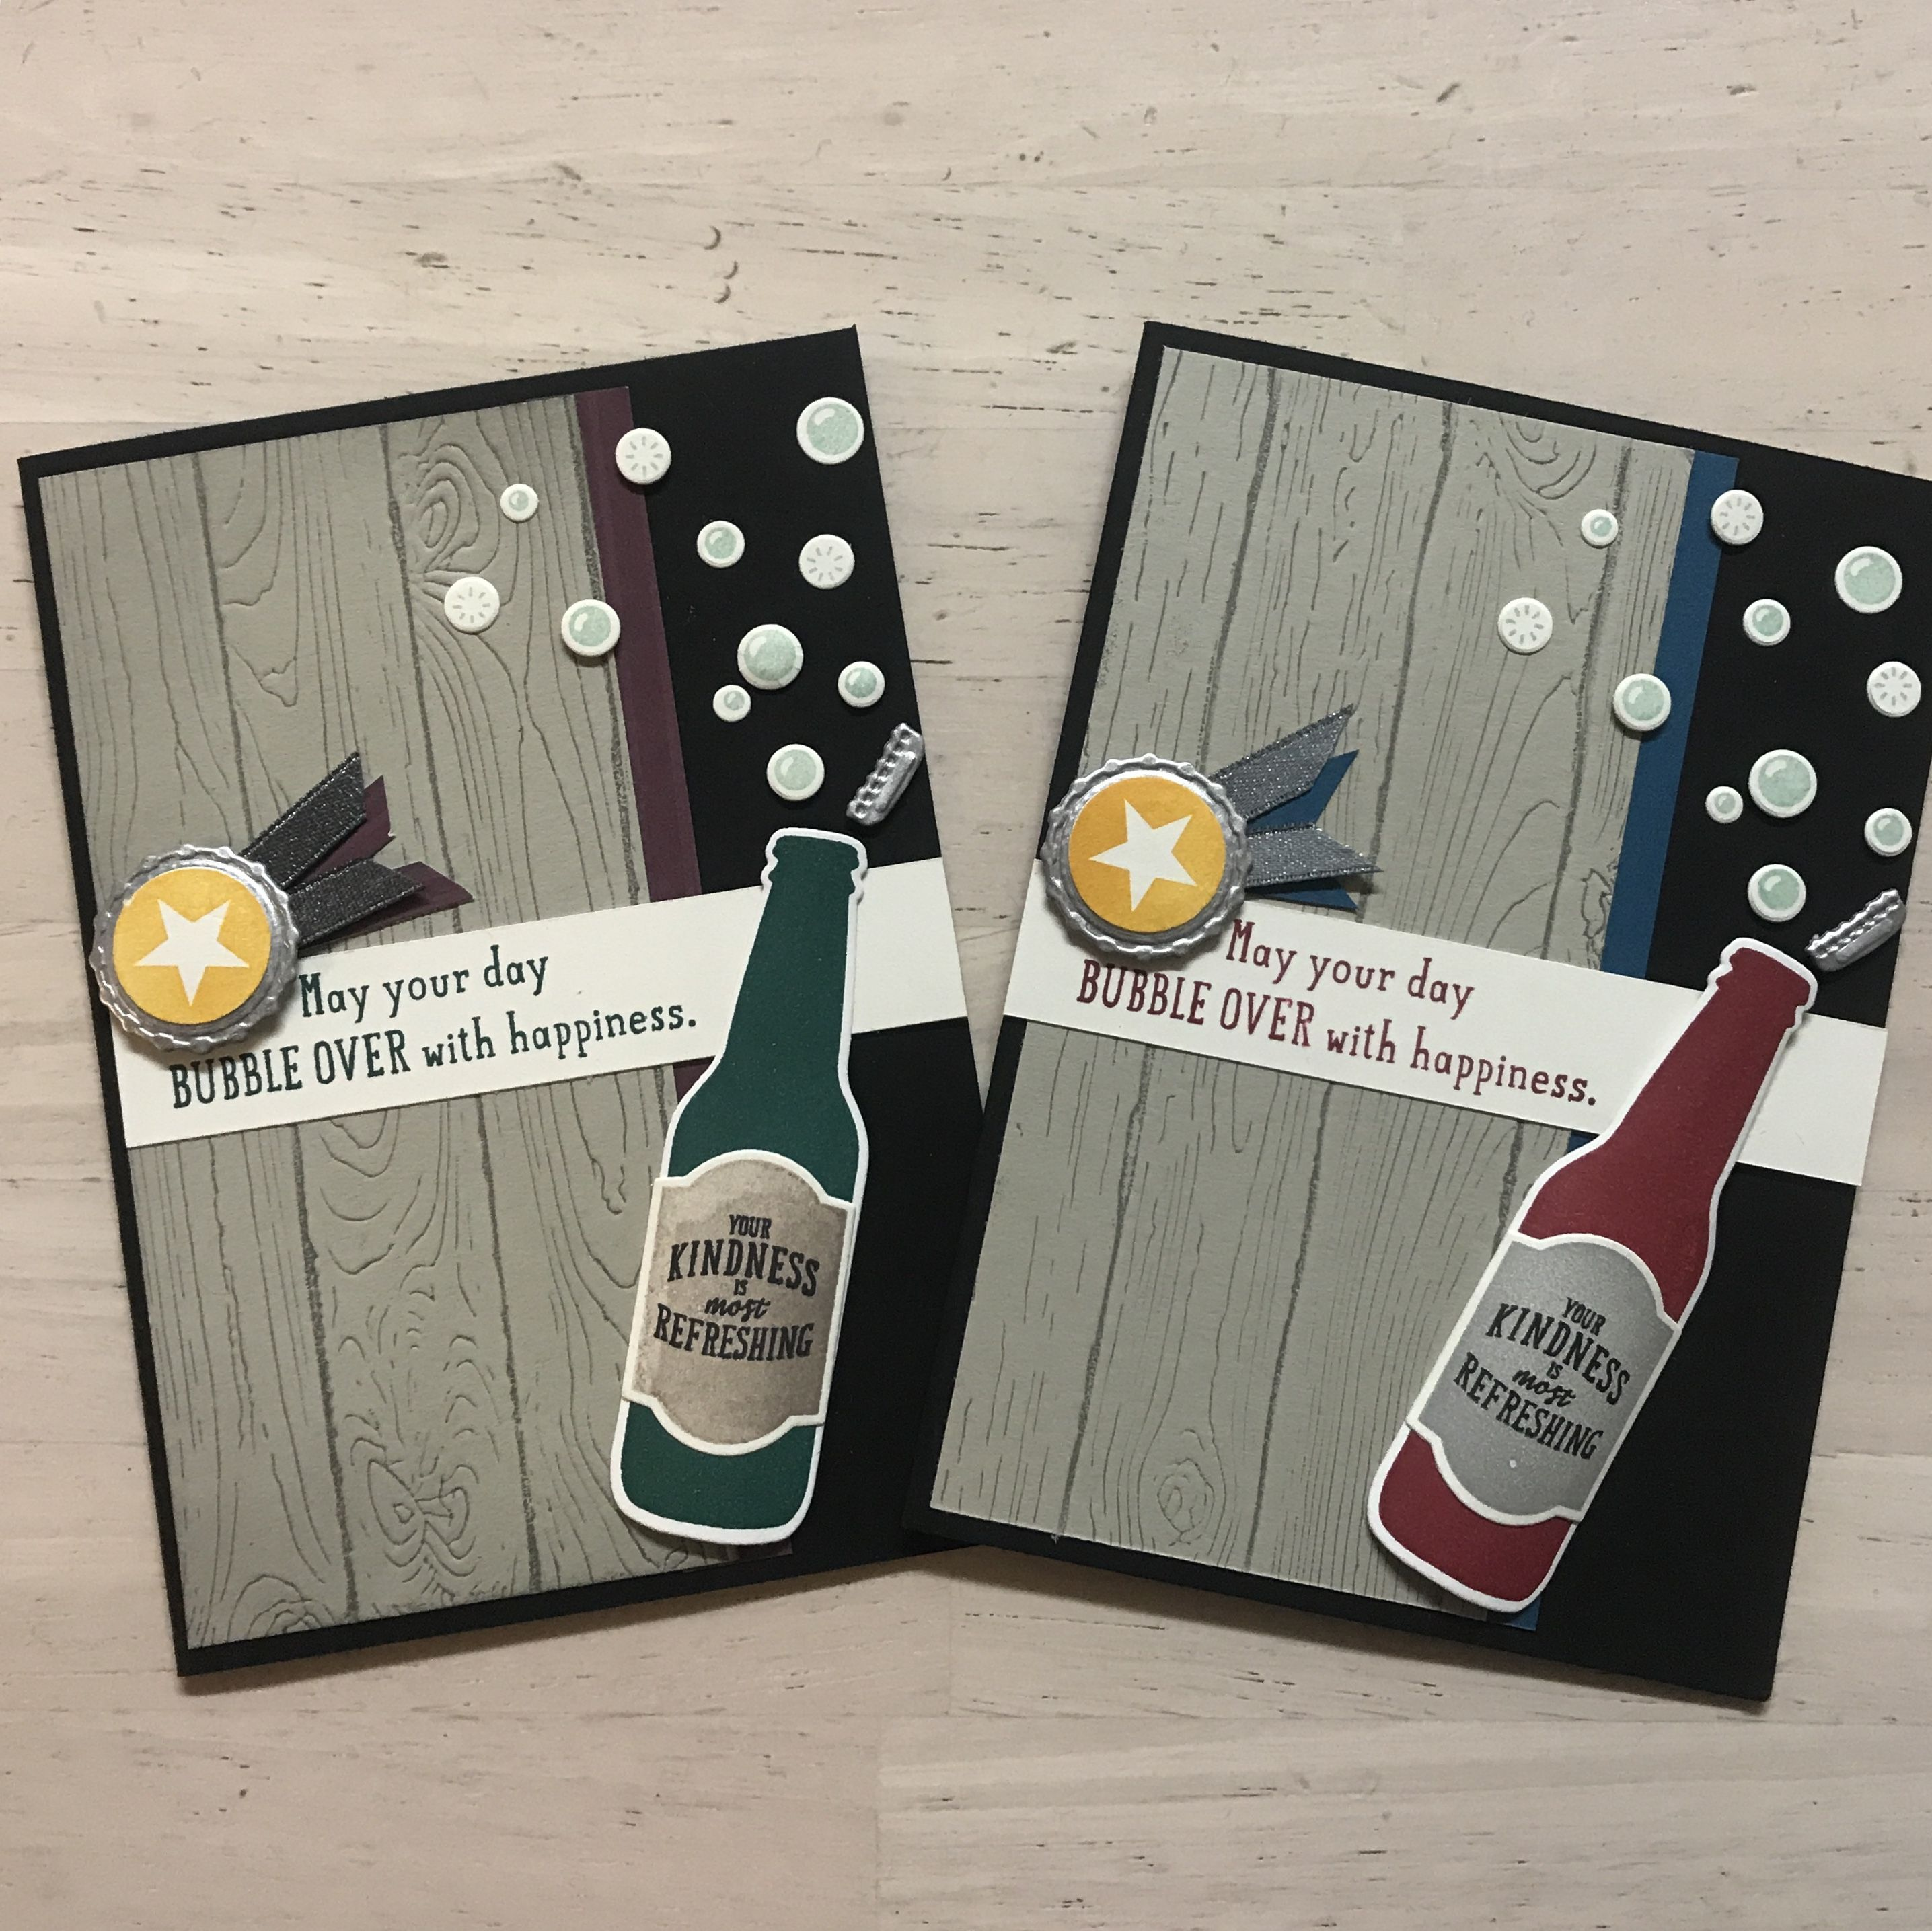 Pin By Sharon Benson On Wine Cards Pinterest Cards Bottle And